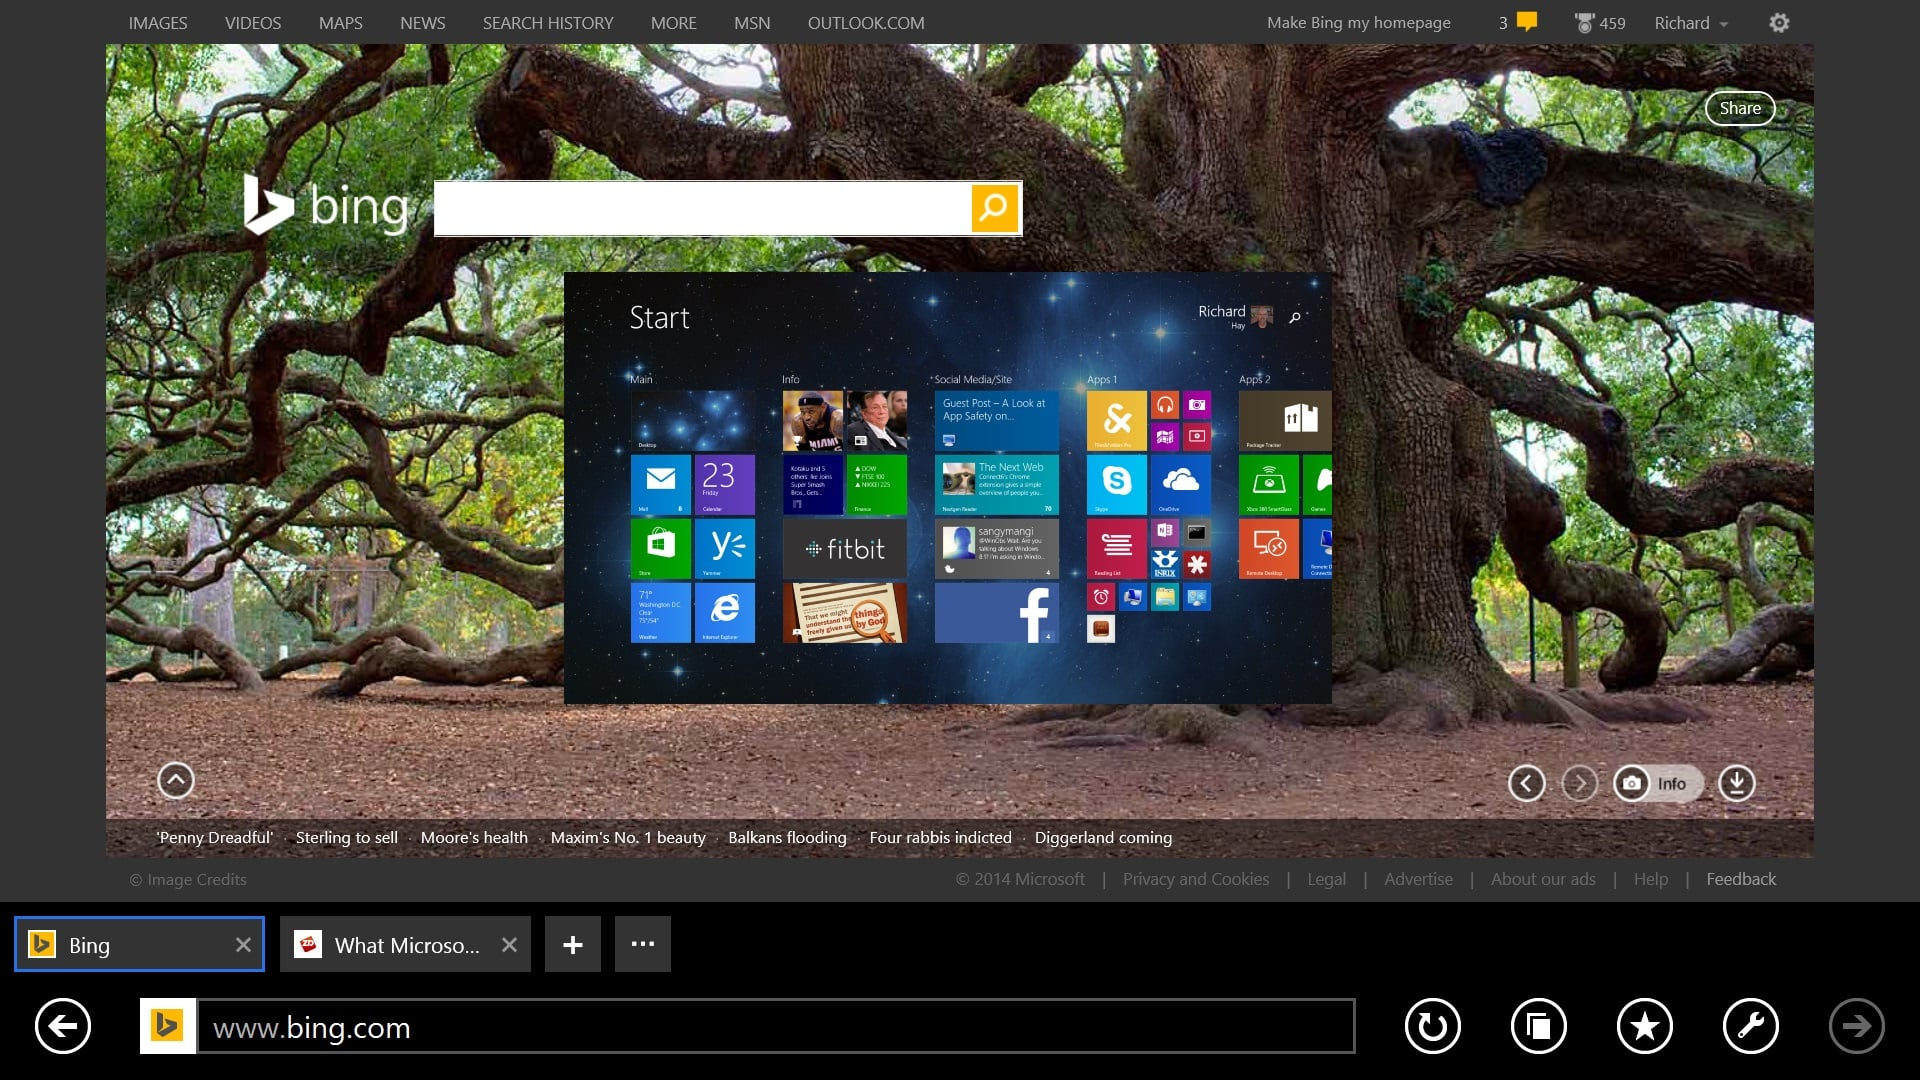 Windows 8.1 with Bing will help OEM's bring low cost devices to market